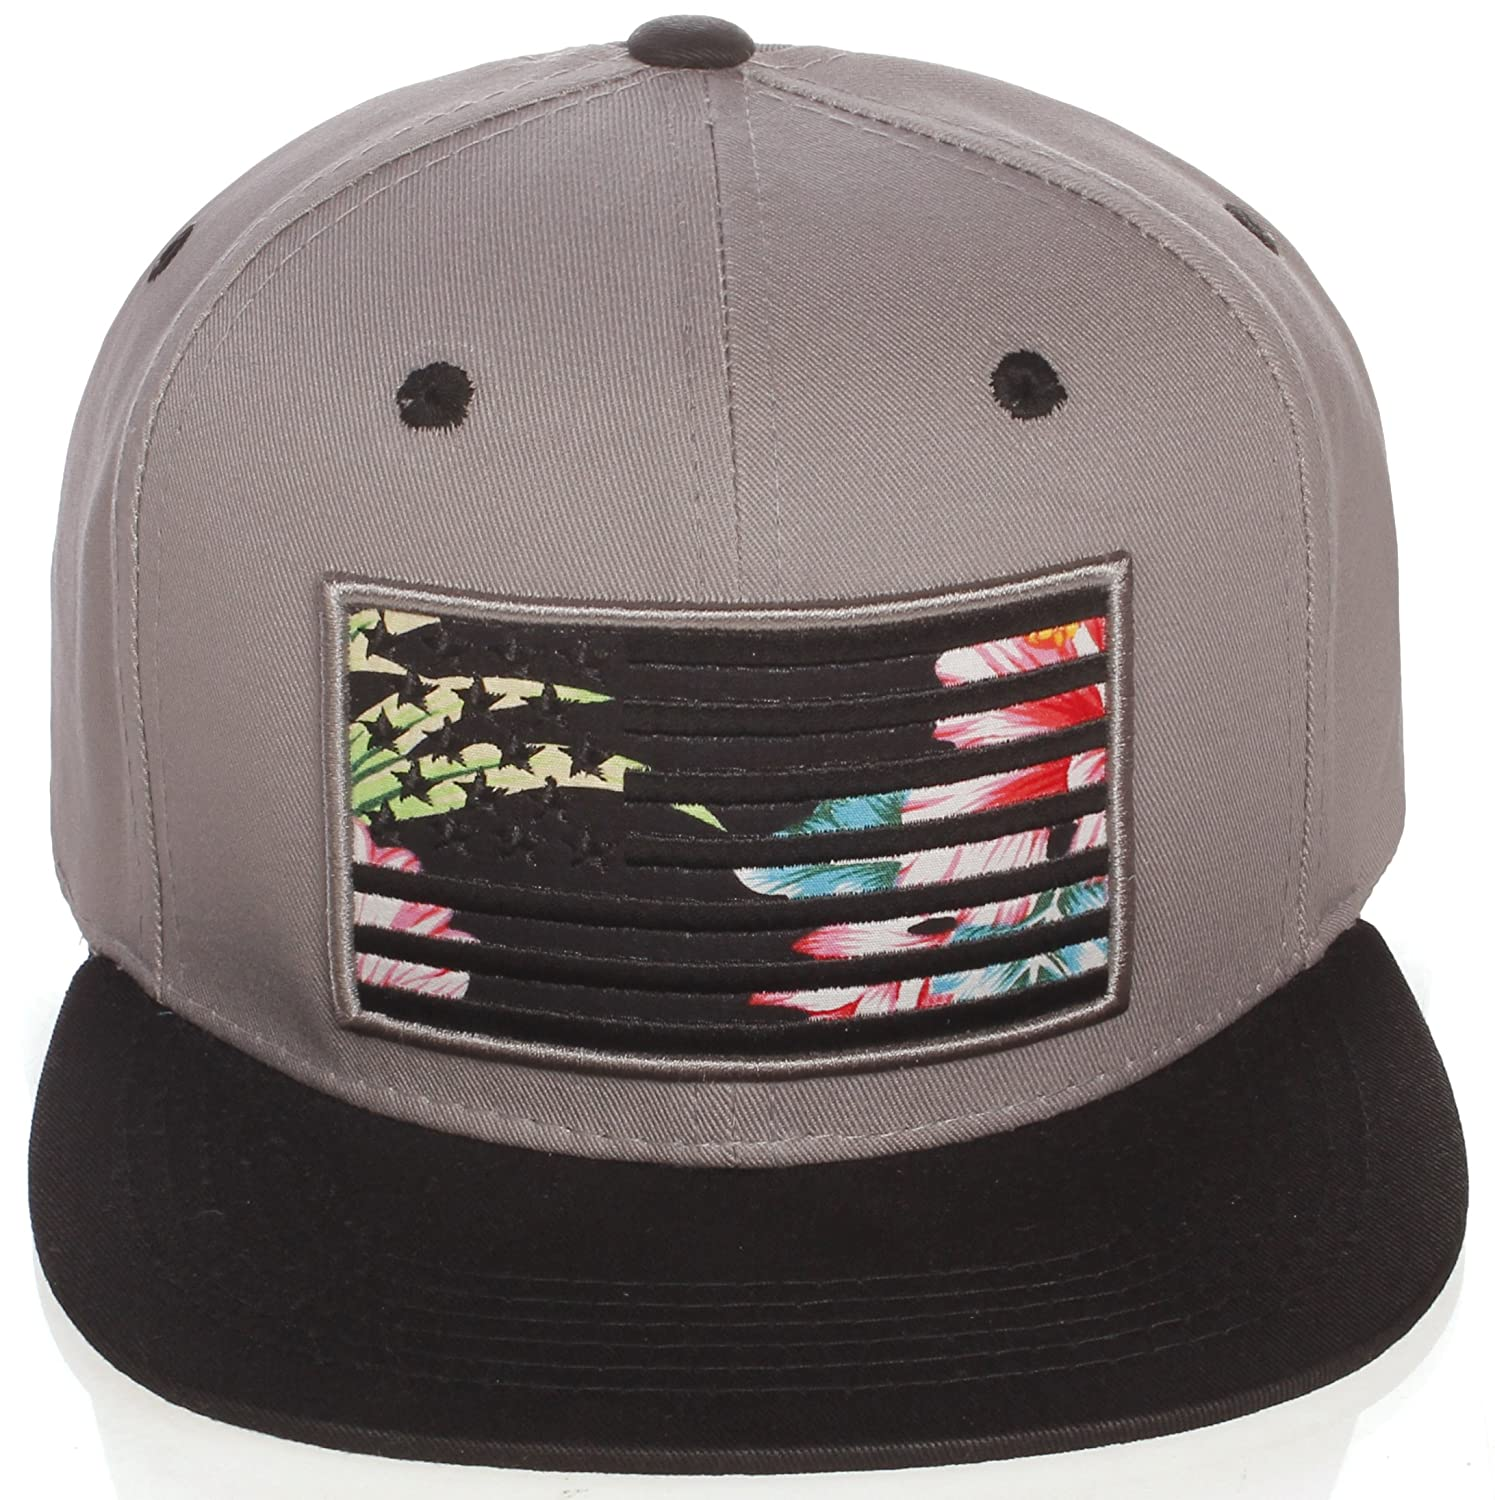 32746abf02350 Amazon.com  American Cities Men s USA Flag National Snapback Hat Cap 3D  Embroidery  Clothing